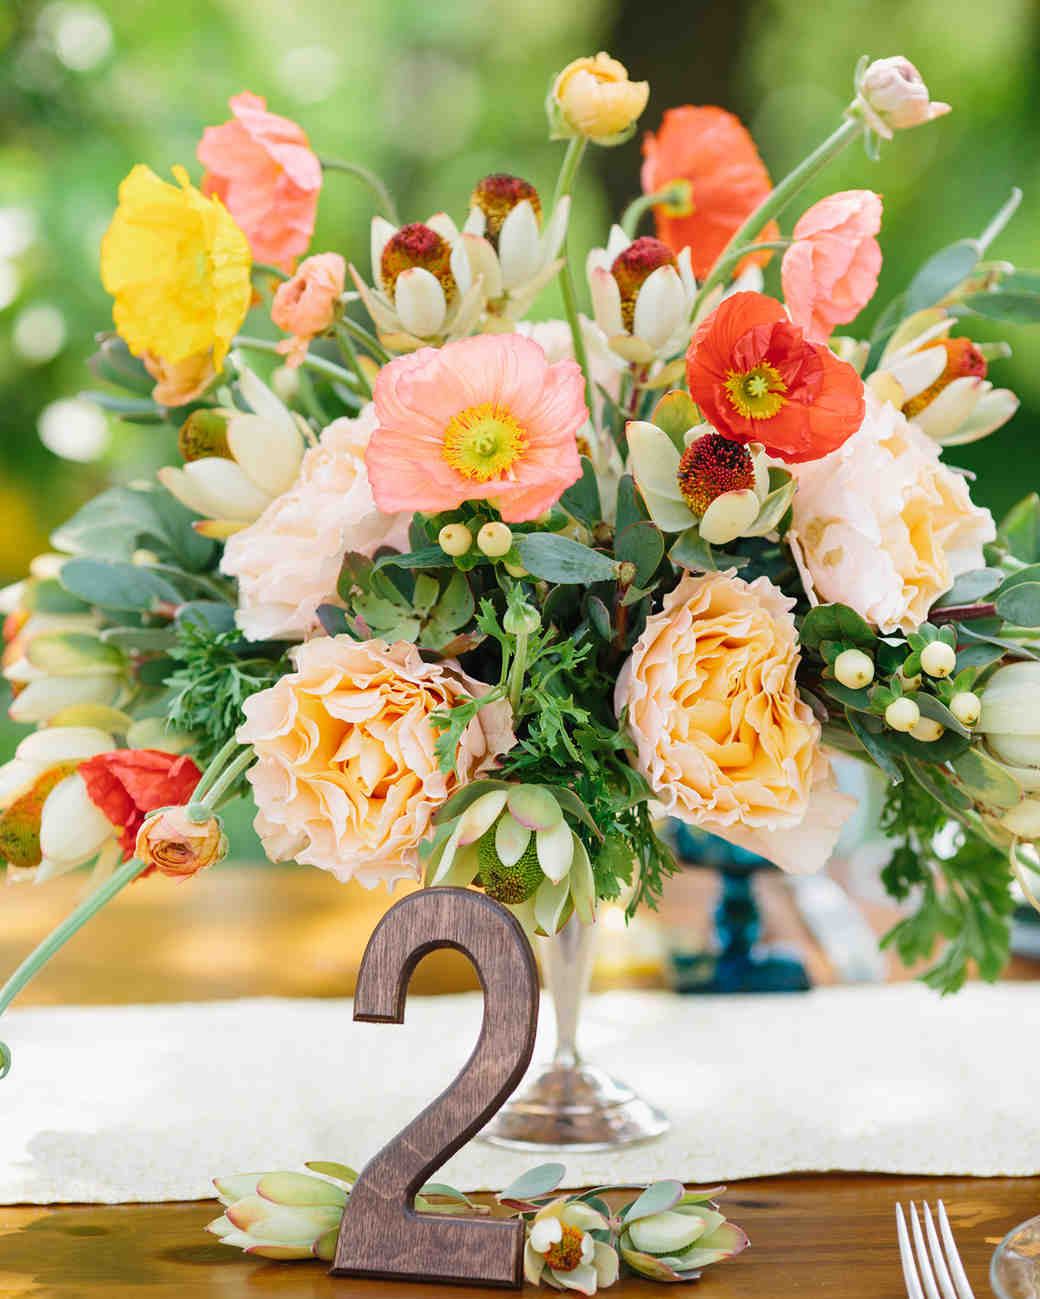 Colorful summer wedding centerpiece with poppies and roses